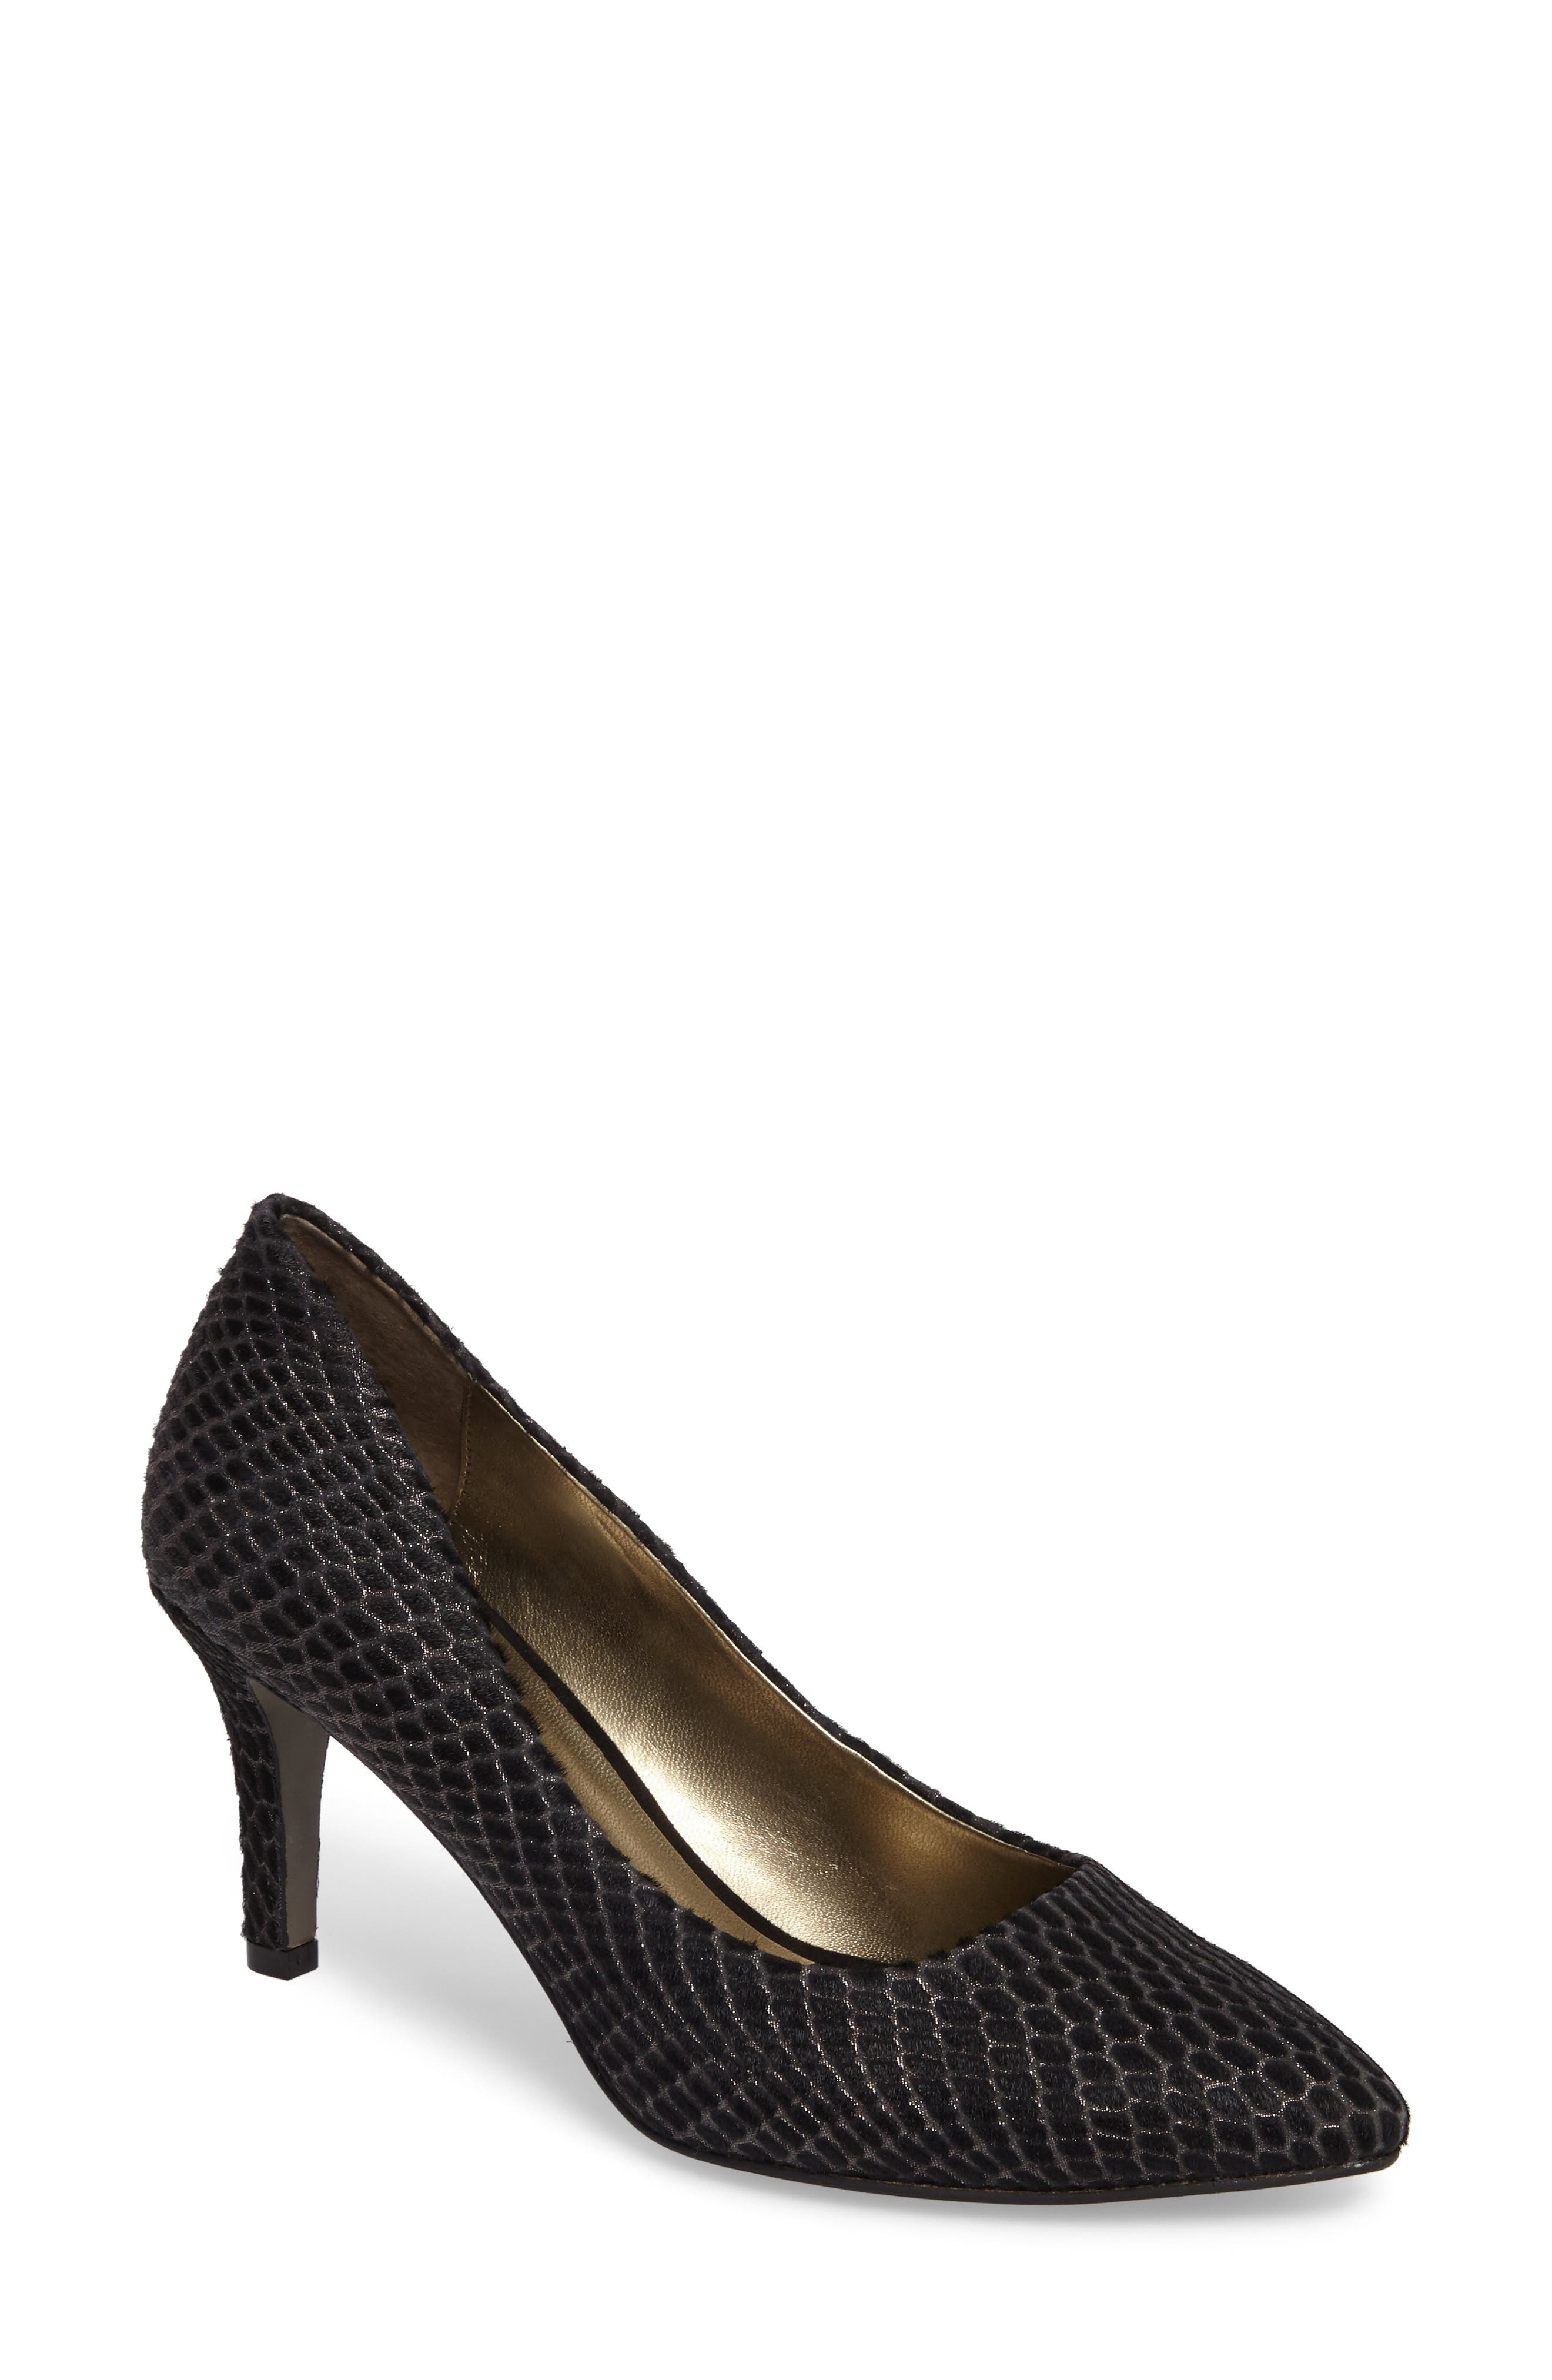 Symphony Pointy Toe Pump,                         Main,                         color, Black Leather